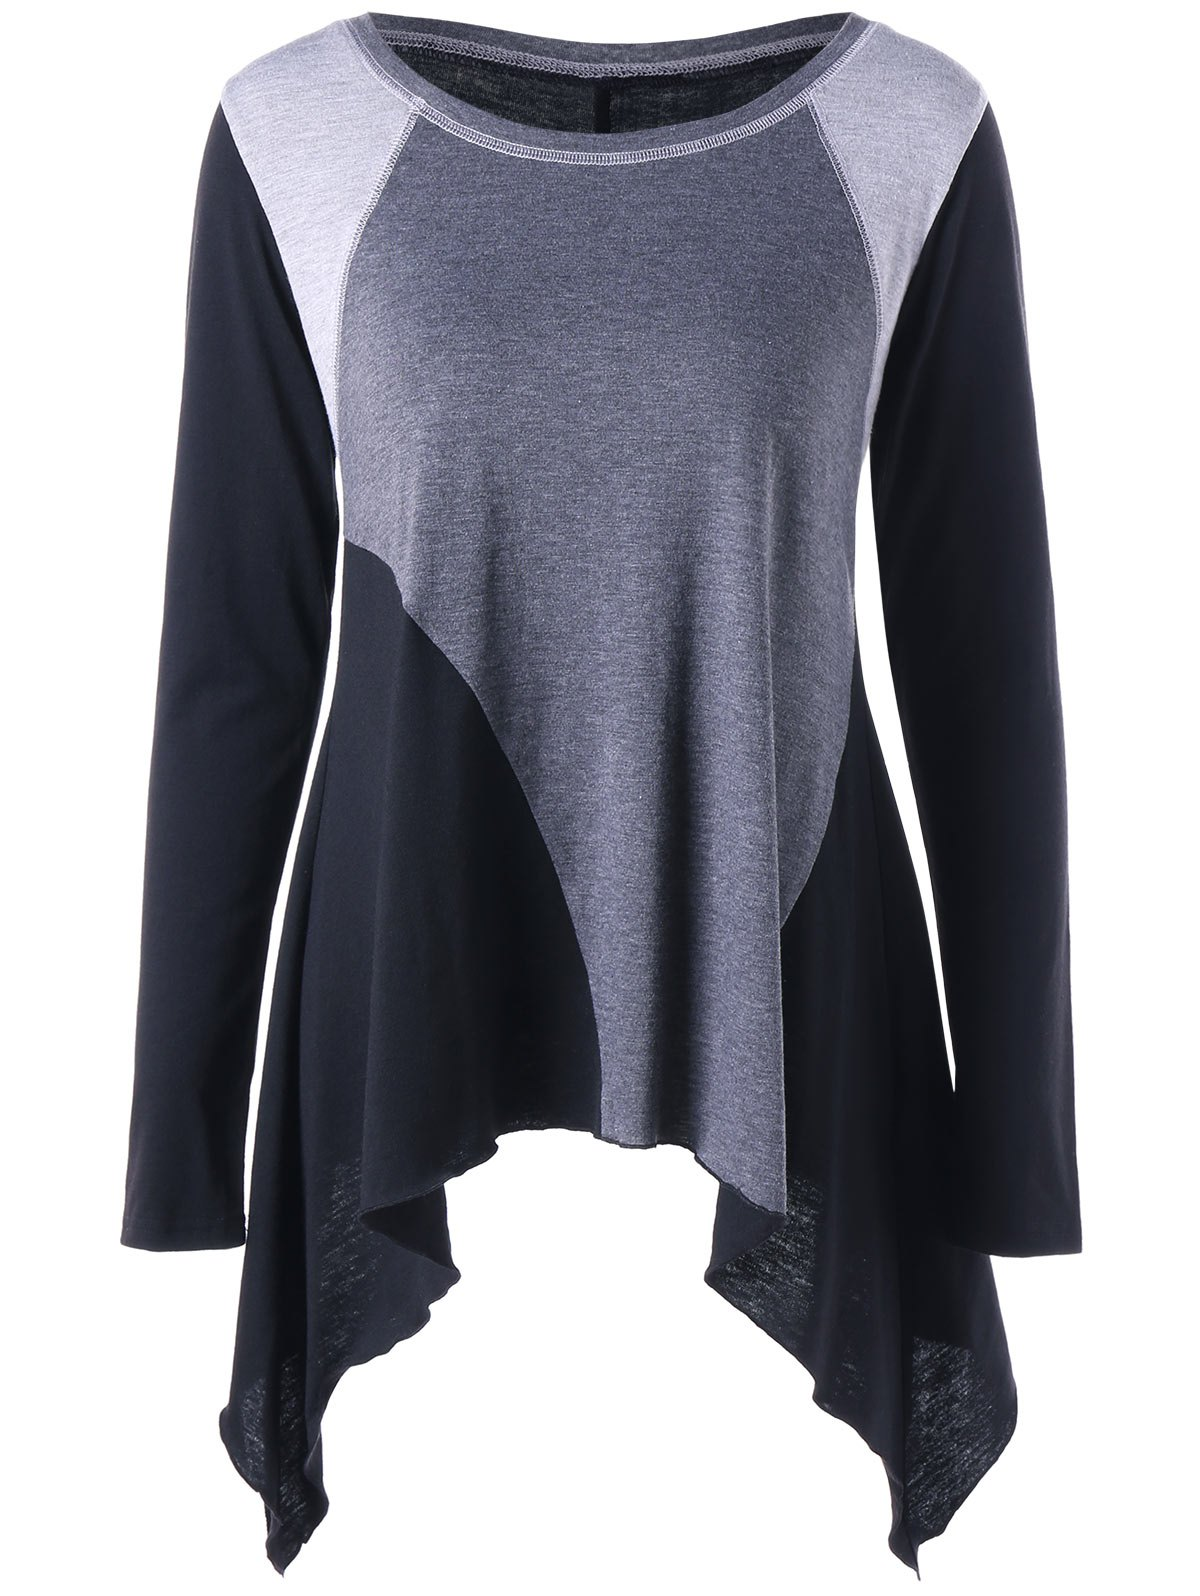 Asymmetric Color Block Long Sleeve Top - GRAY XL